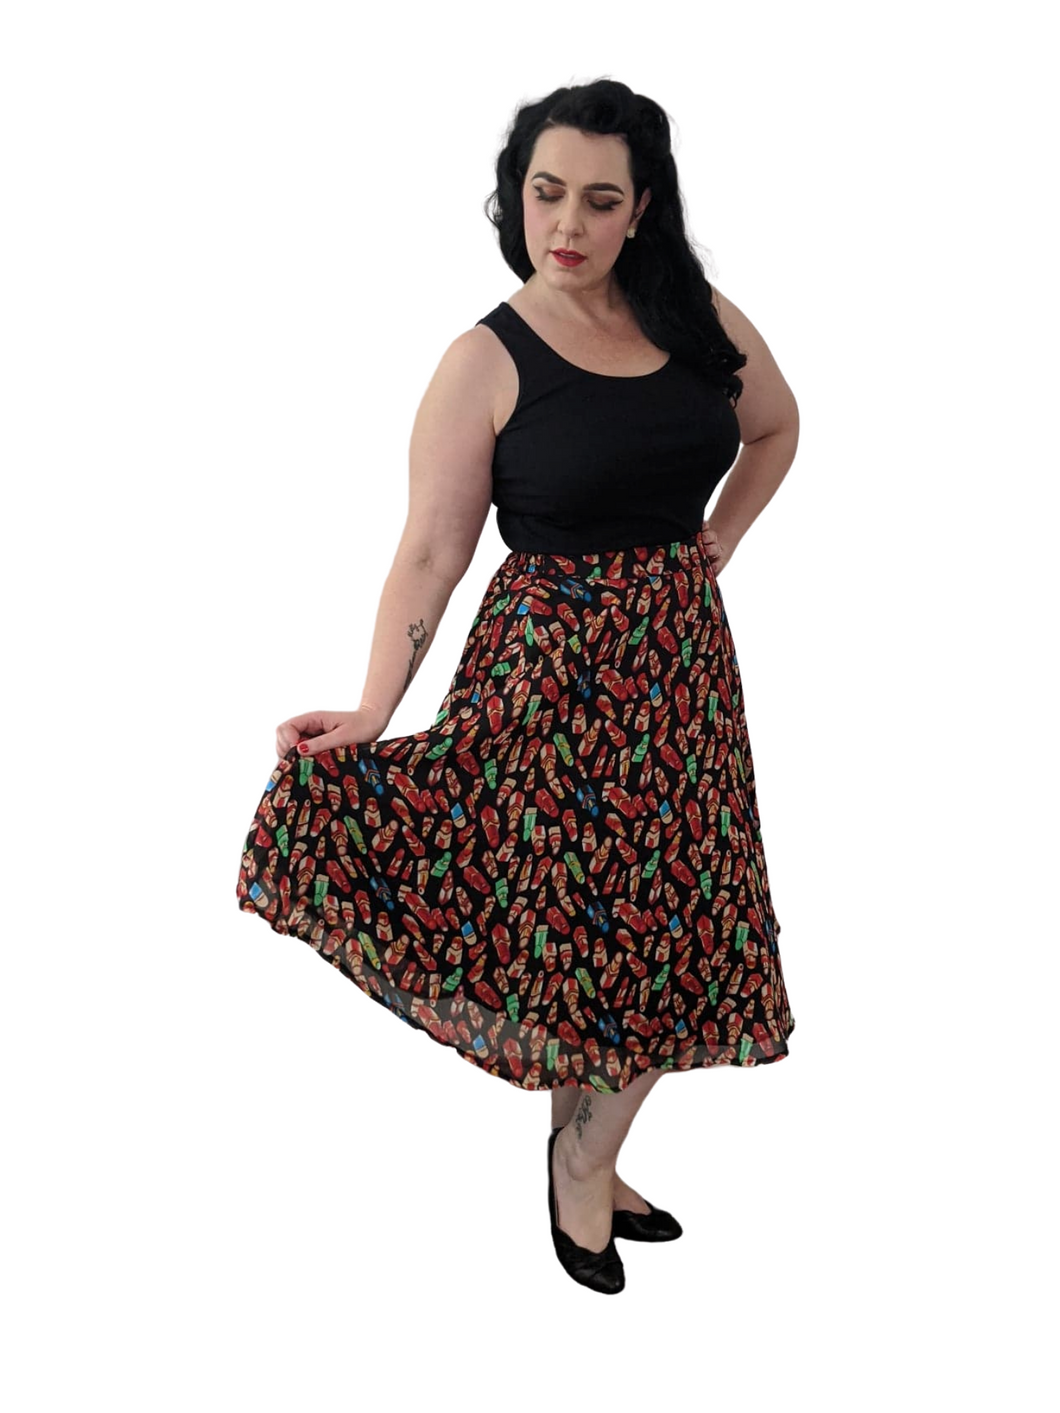 Black/Red Multicoloured Lipstick Lined 50s Style Print Skirt - Curvique Vintage